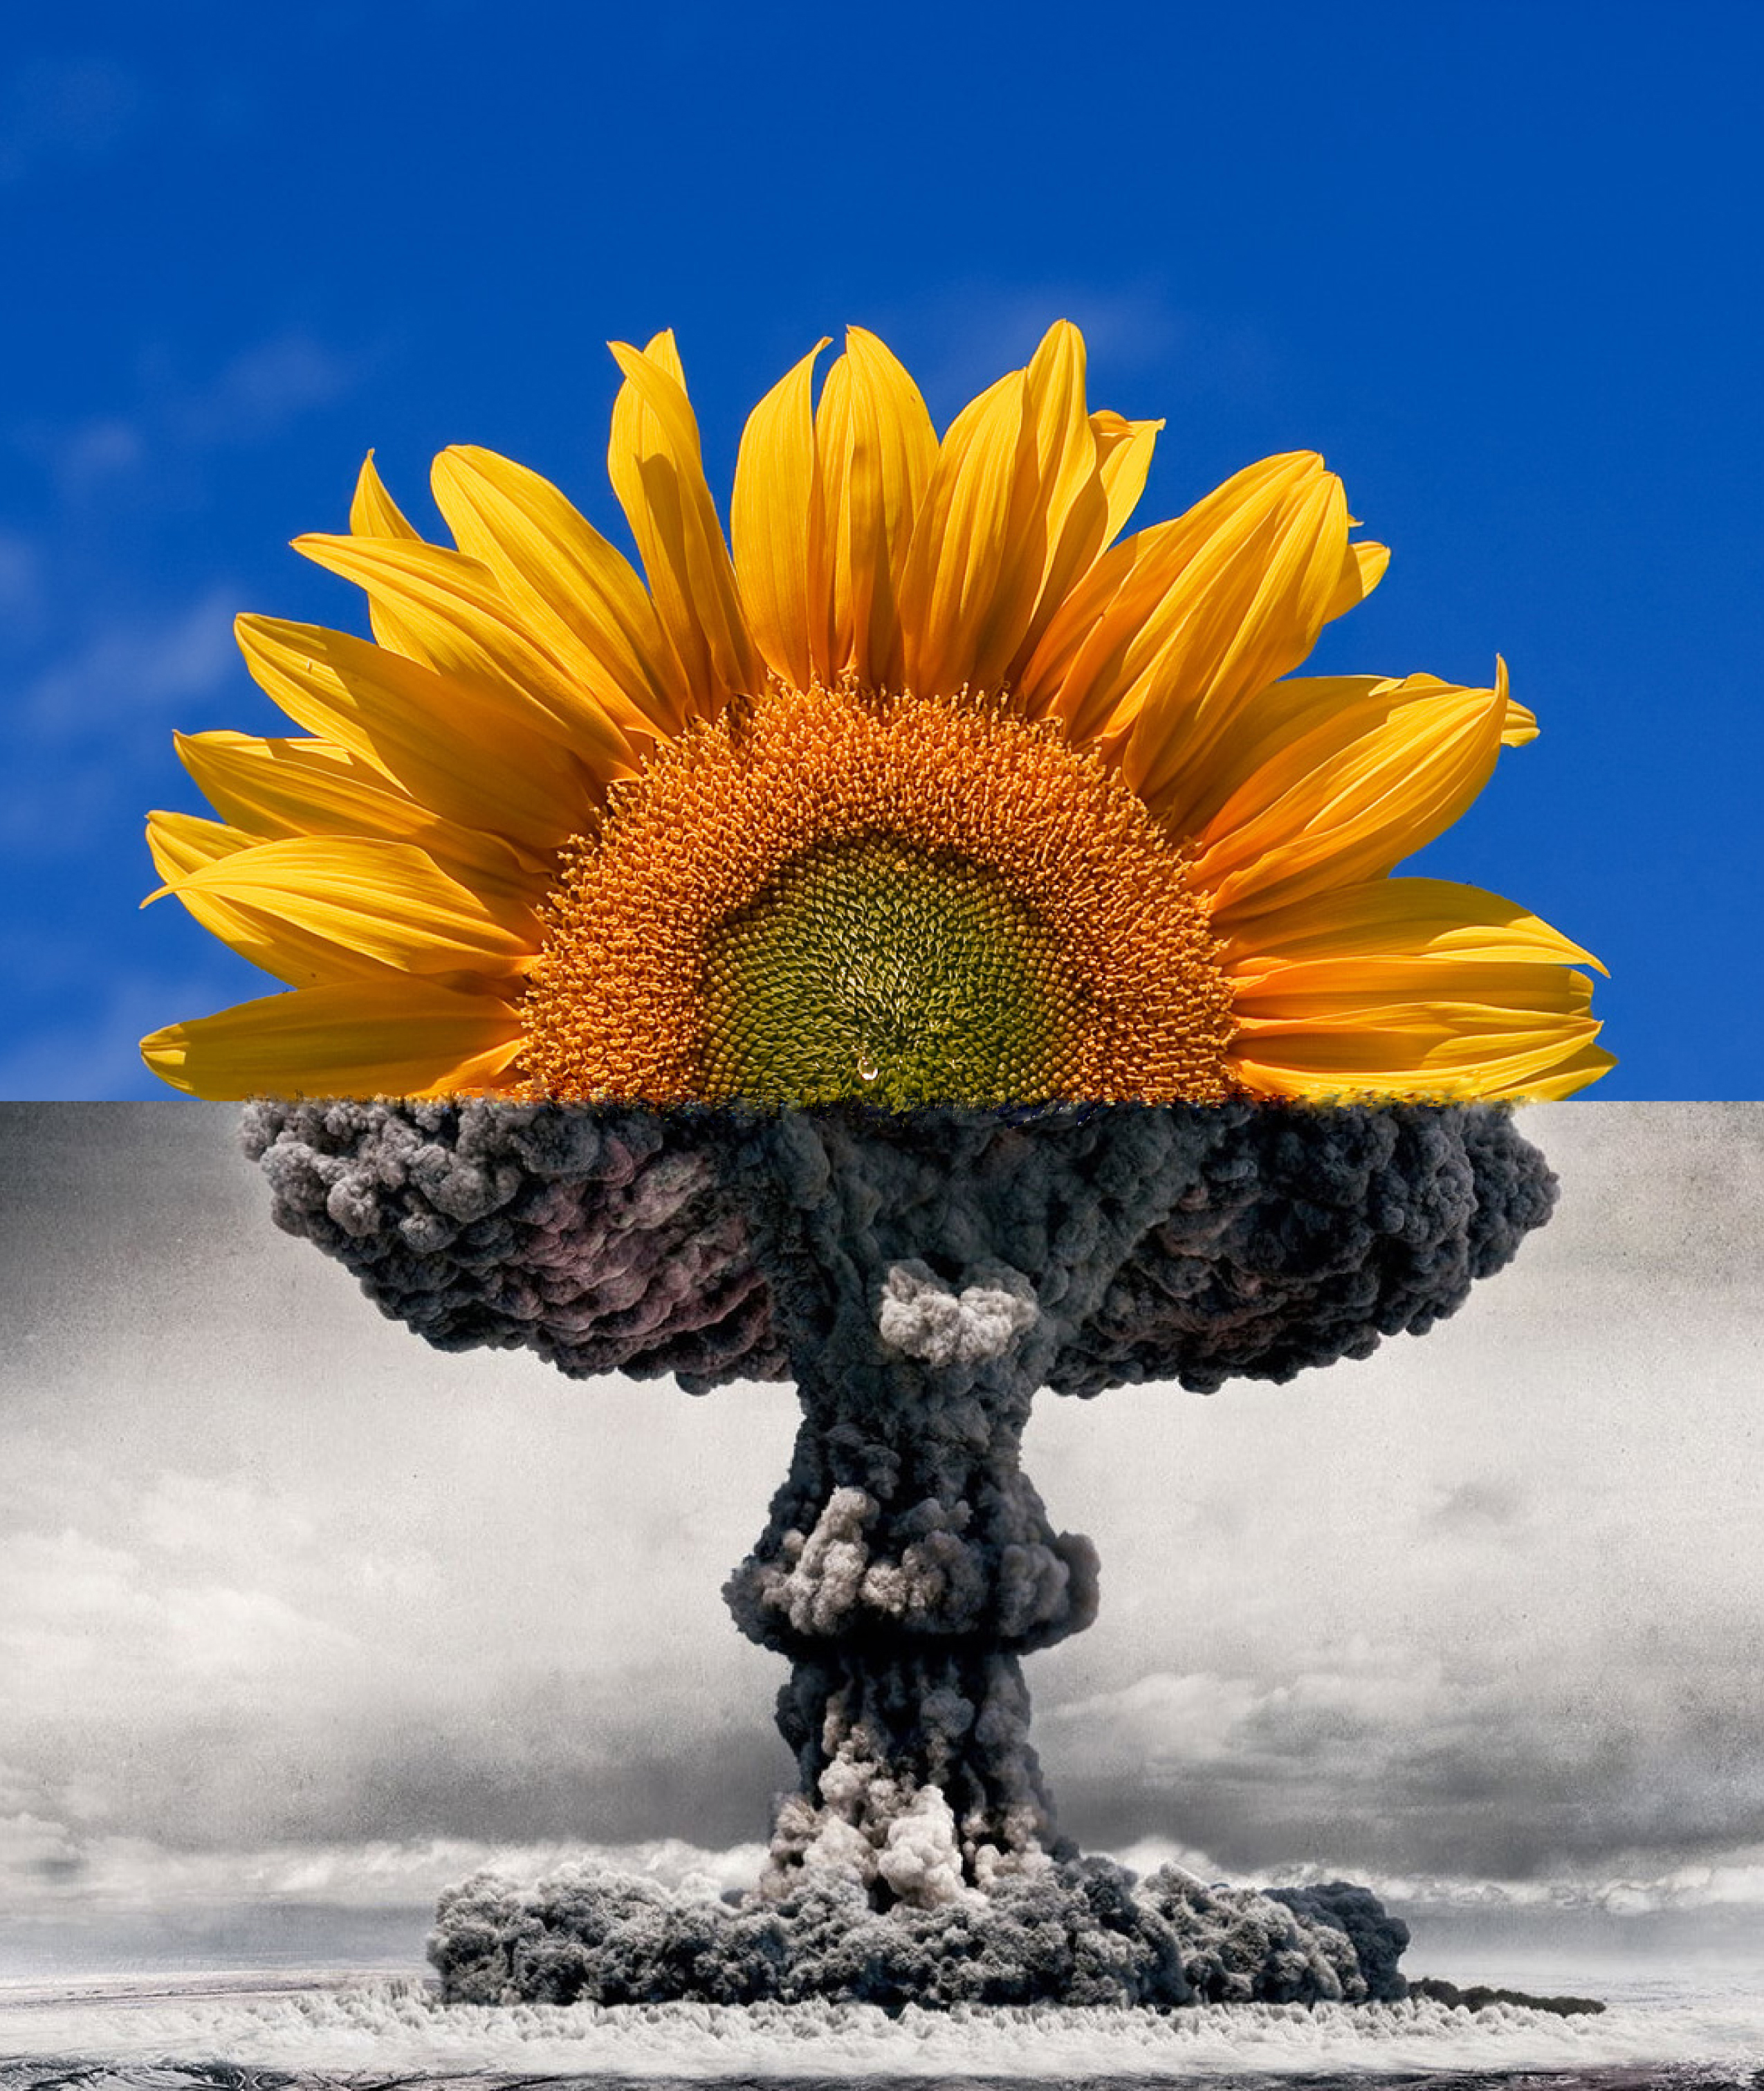 Mushroom_cloud_becoming_sunflower.jpg